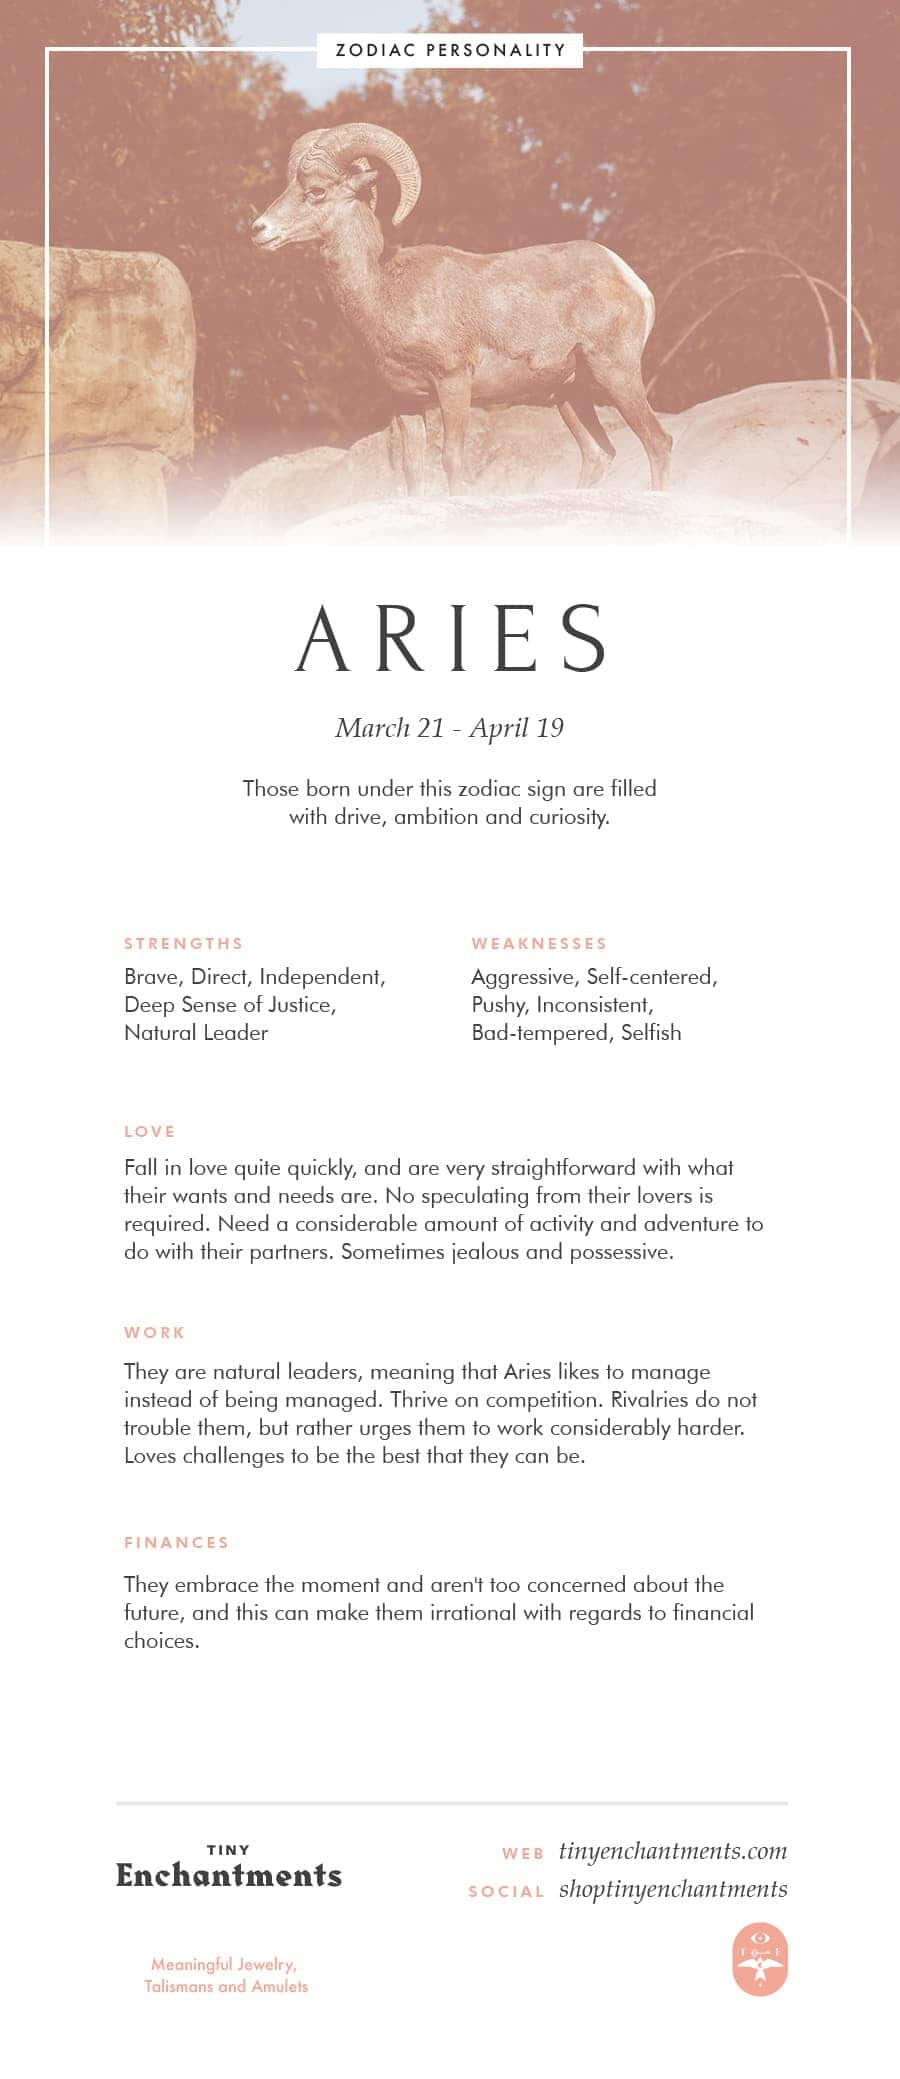 Aries Zodiac Sign Correspondences - Aries Personality, Aries Symbol, Aries Mythology and Aries Meaning